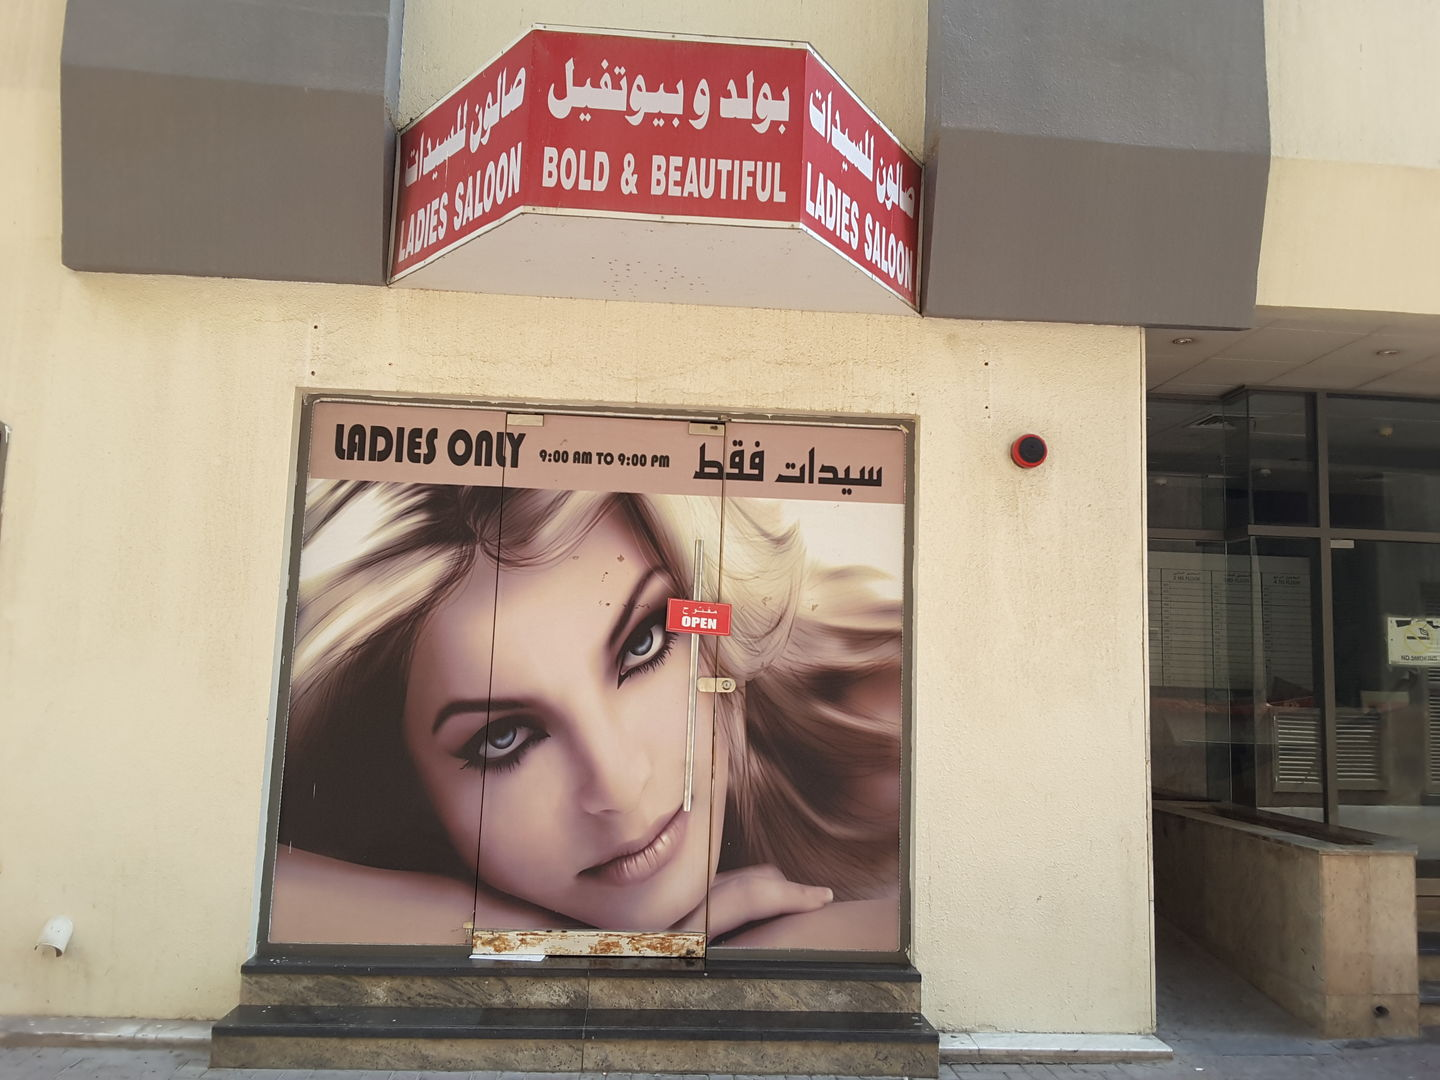 Walif-business-bold-beautiful-ladies-saloon